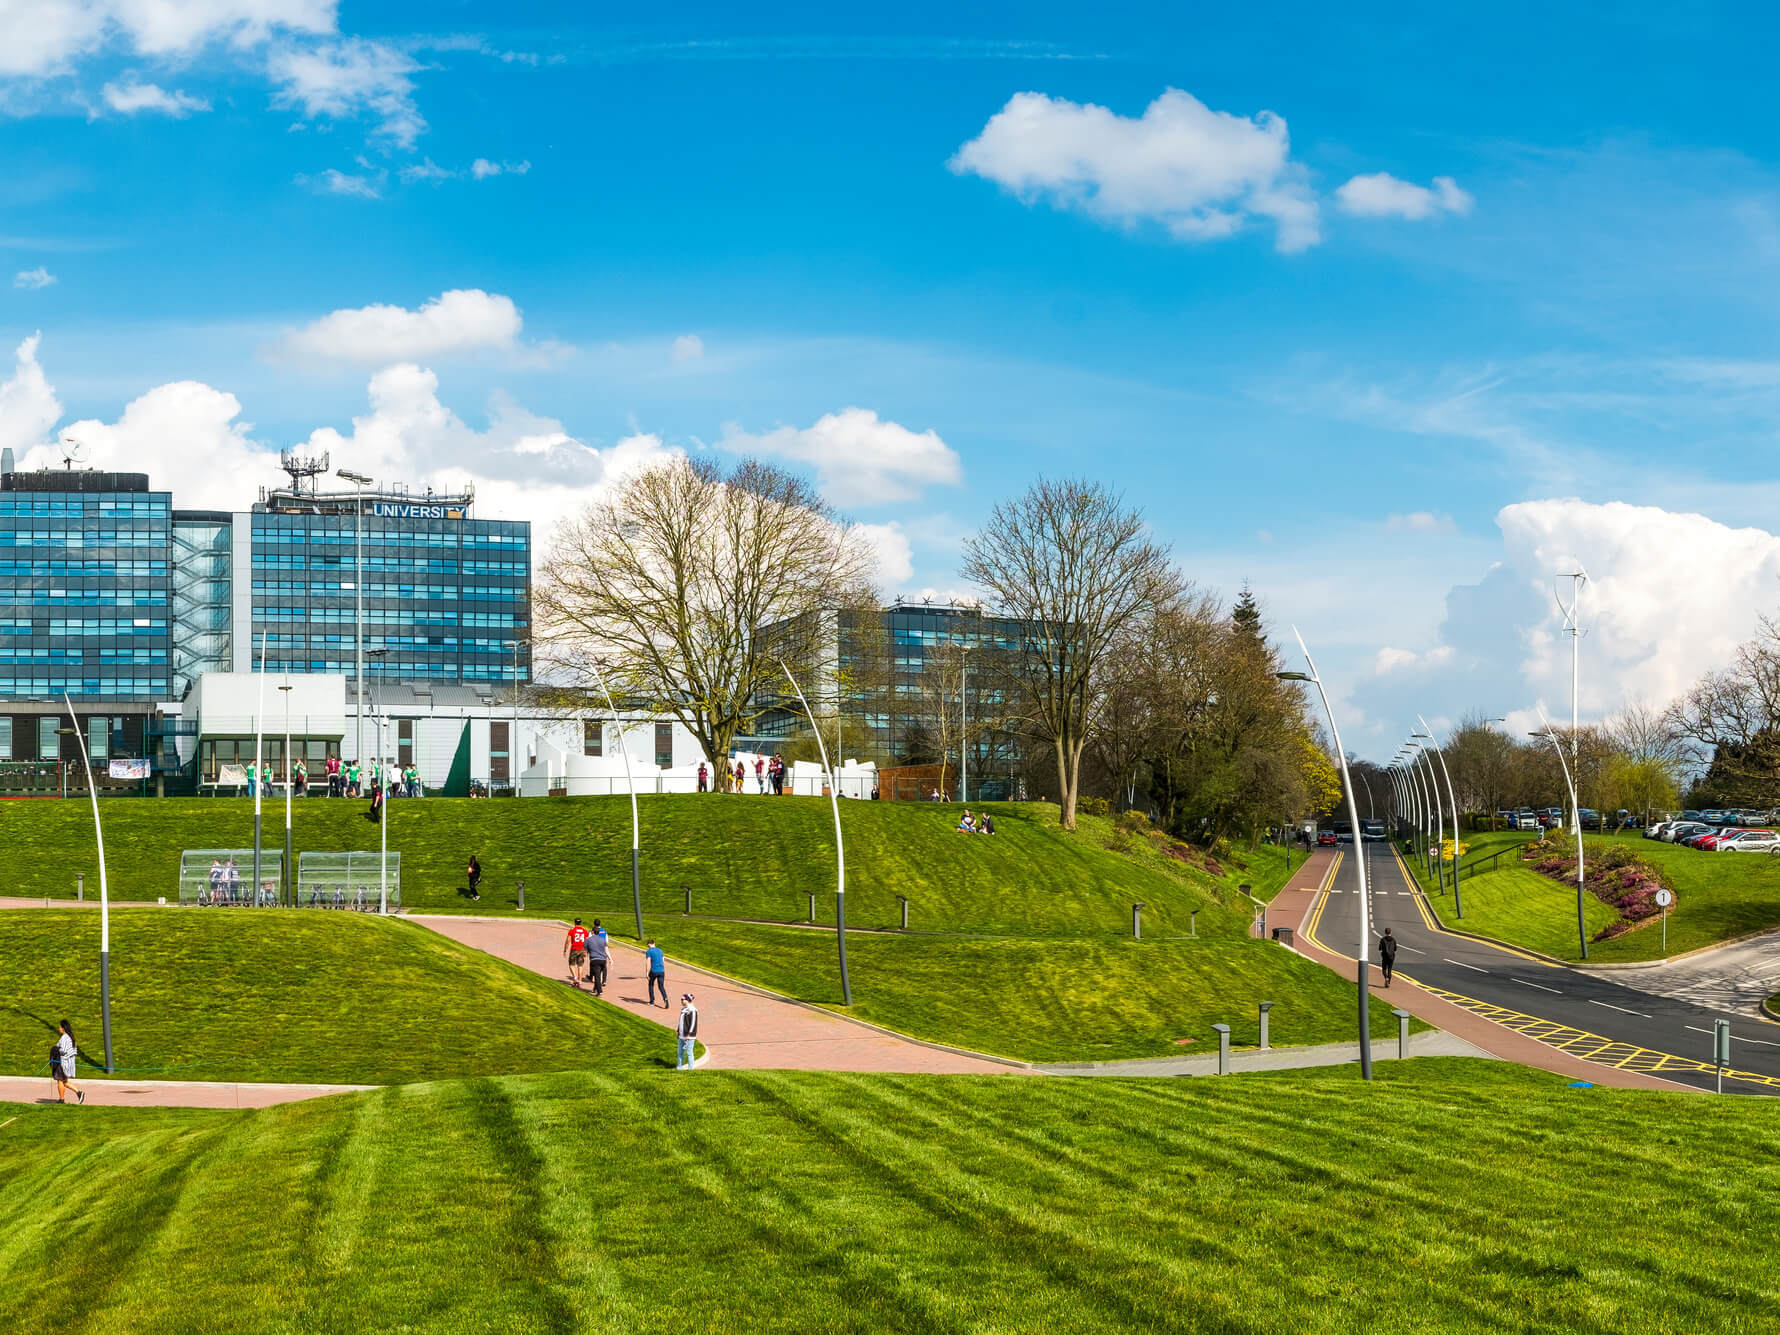 University of Derby Kedleston Road campus